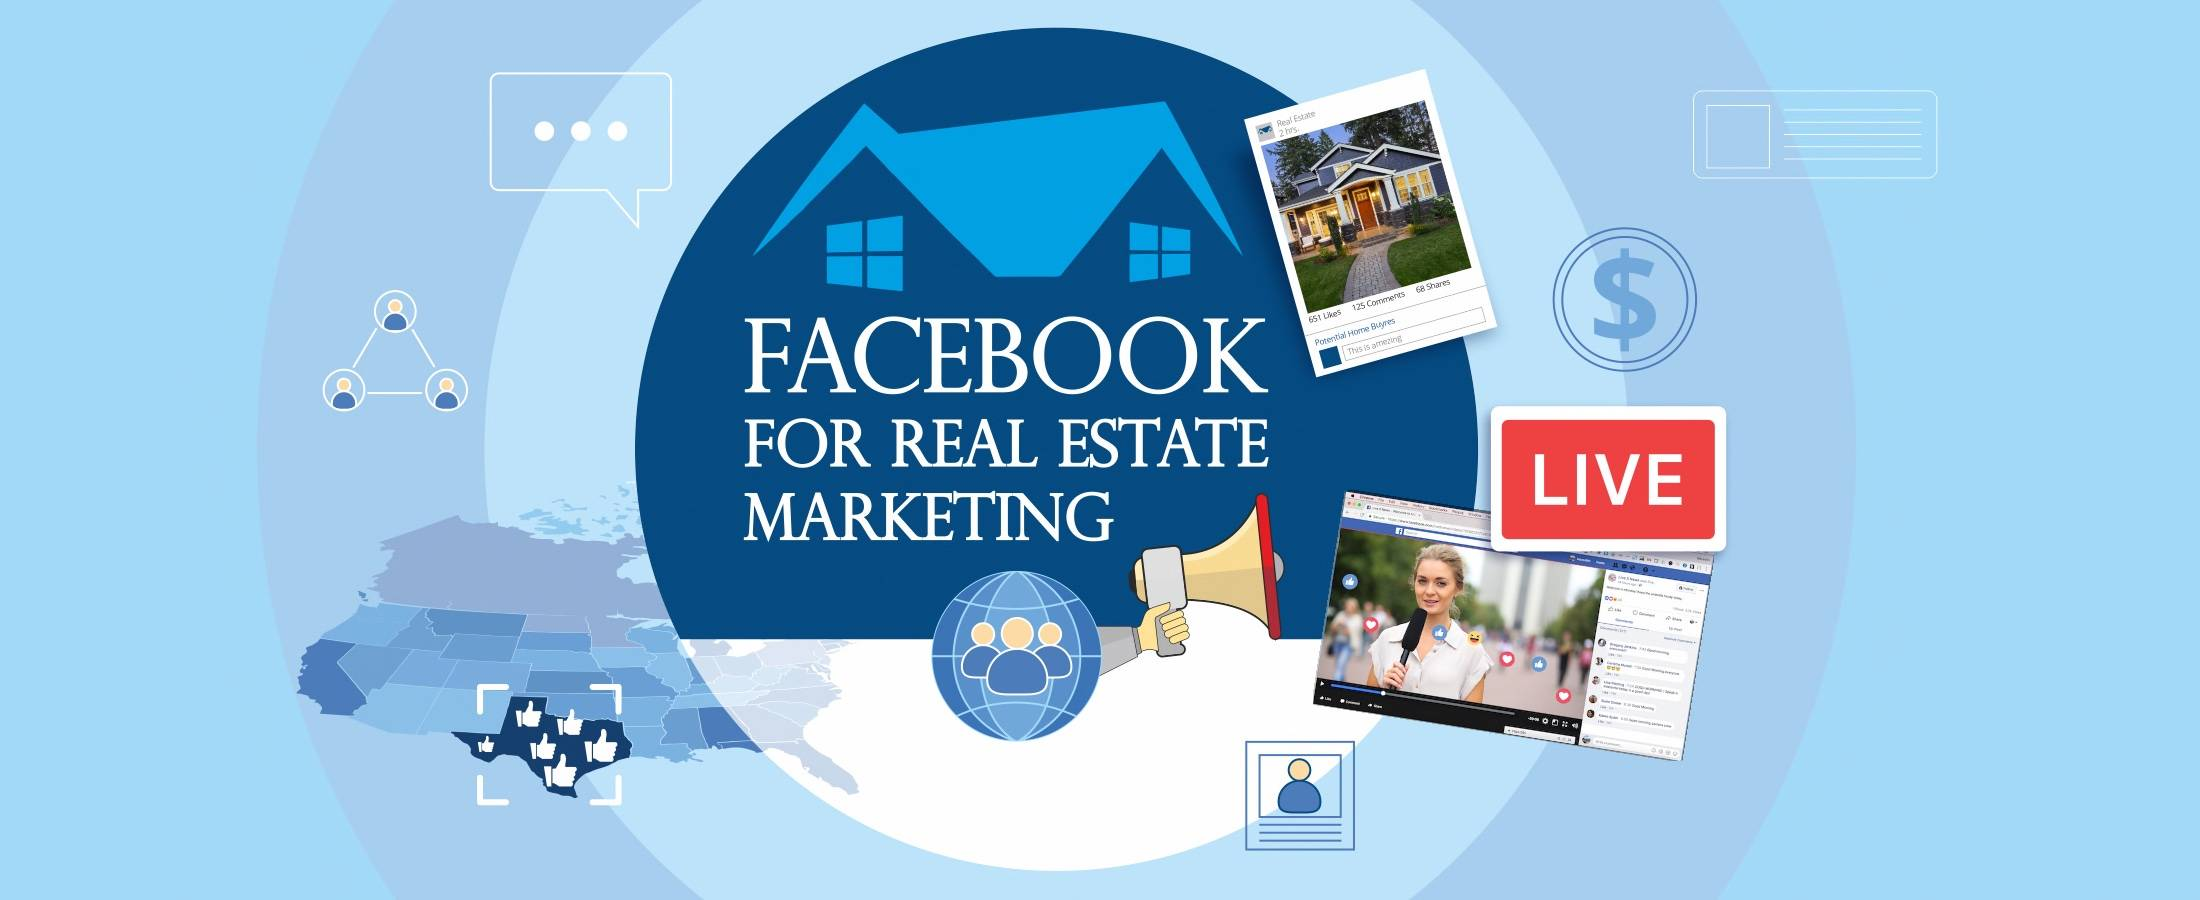 Mobifilia - Facebook for Real Estate Marketing